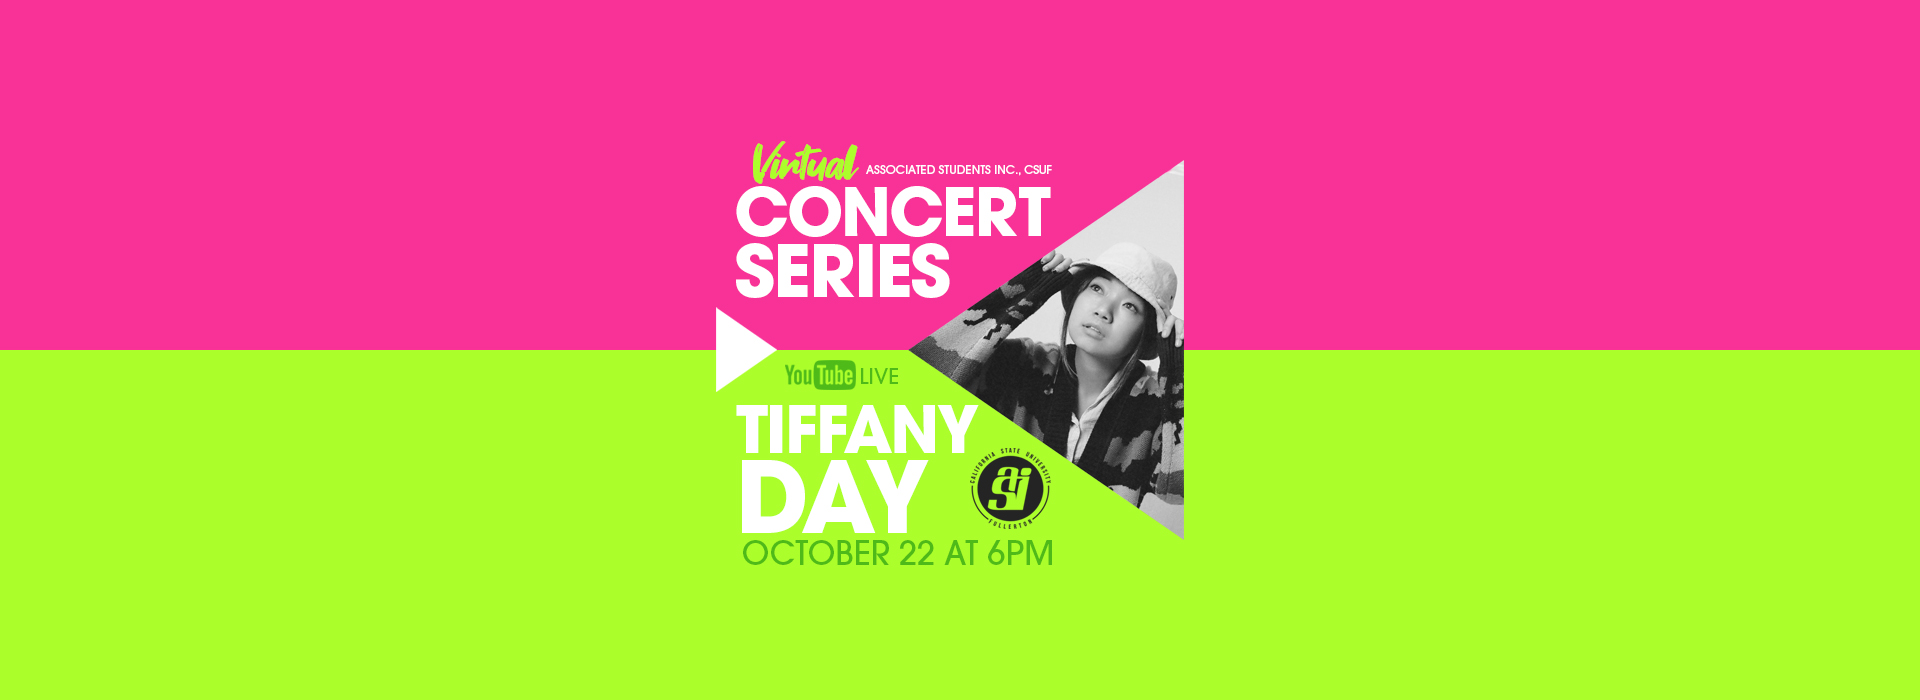 Virtual Concert Series Tiffany Day